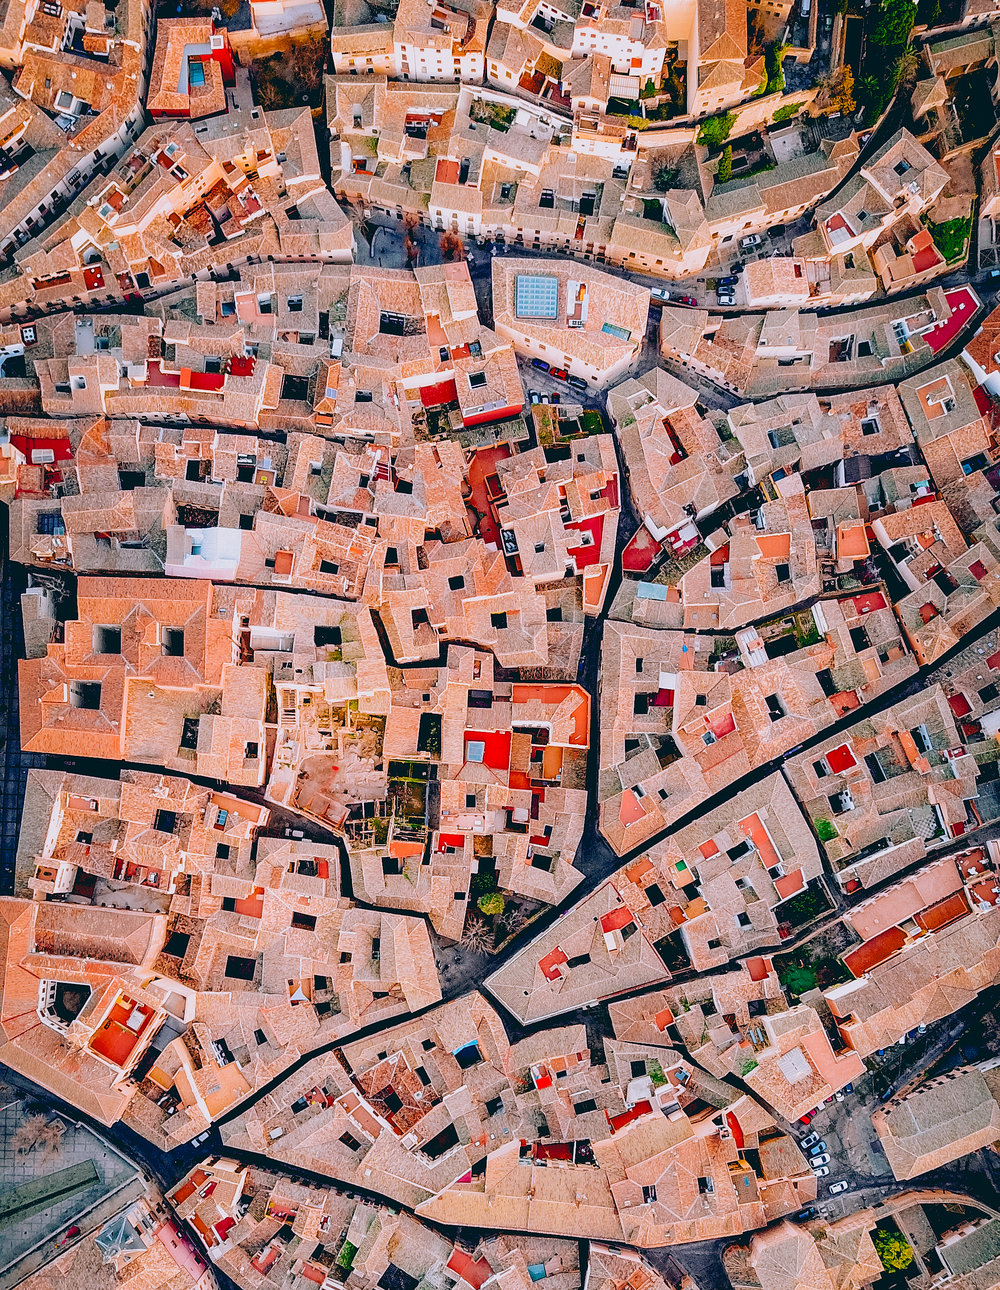 5/26/2017 Toledo, Spain 39.858264, -4.024749 Check out this incredible drone shot of Toledo, Spain. The city is located in central Spain and is home to roughly 80,000 residents. Located on a mountaintop with sweeping views, Toldeo is often recognized for its historic sites, including the Alcázar and the Zocodover.  Drone photo by:Martin Sanchez